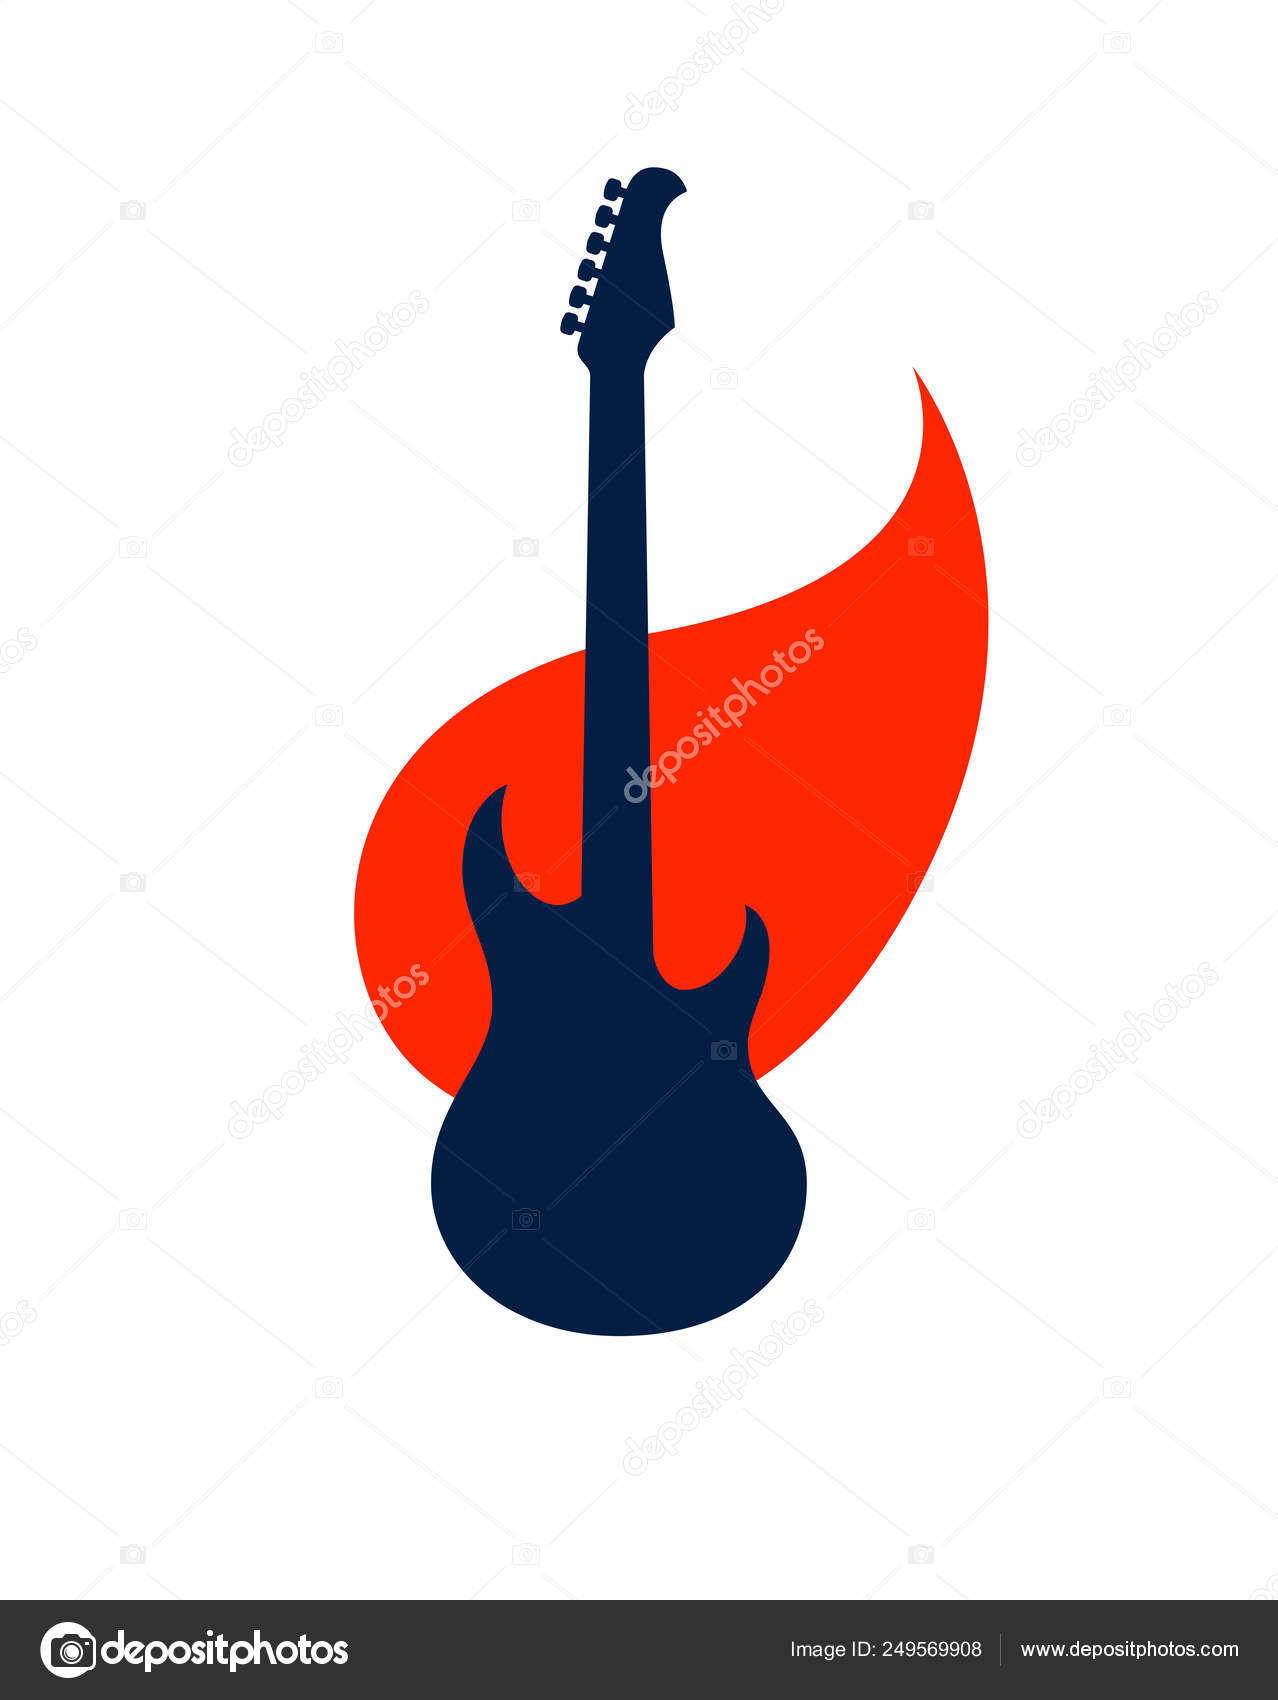 Electric guitar on fire, hot rock music guitar in flames, Hard R